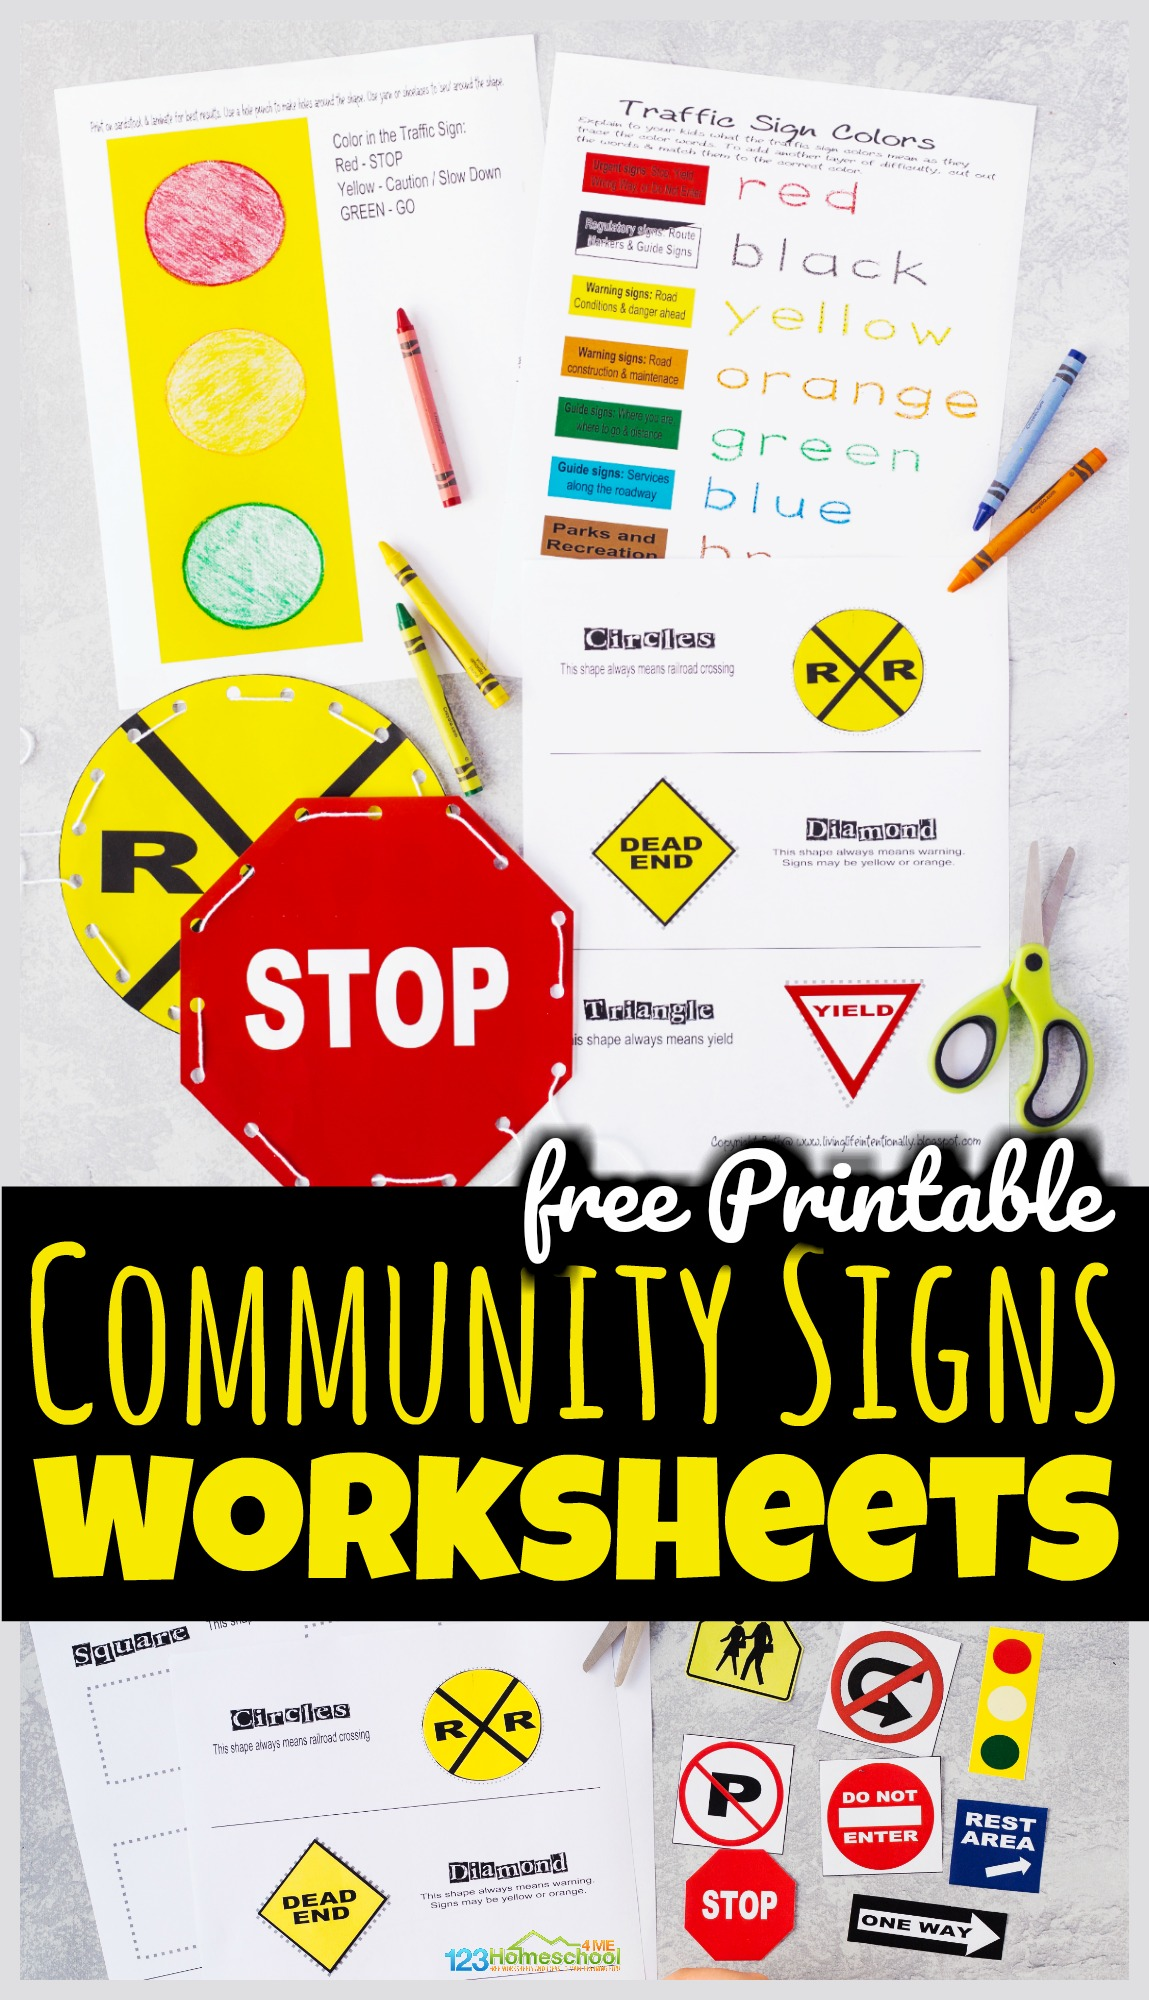 Free Printable Community Signs Worksheets